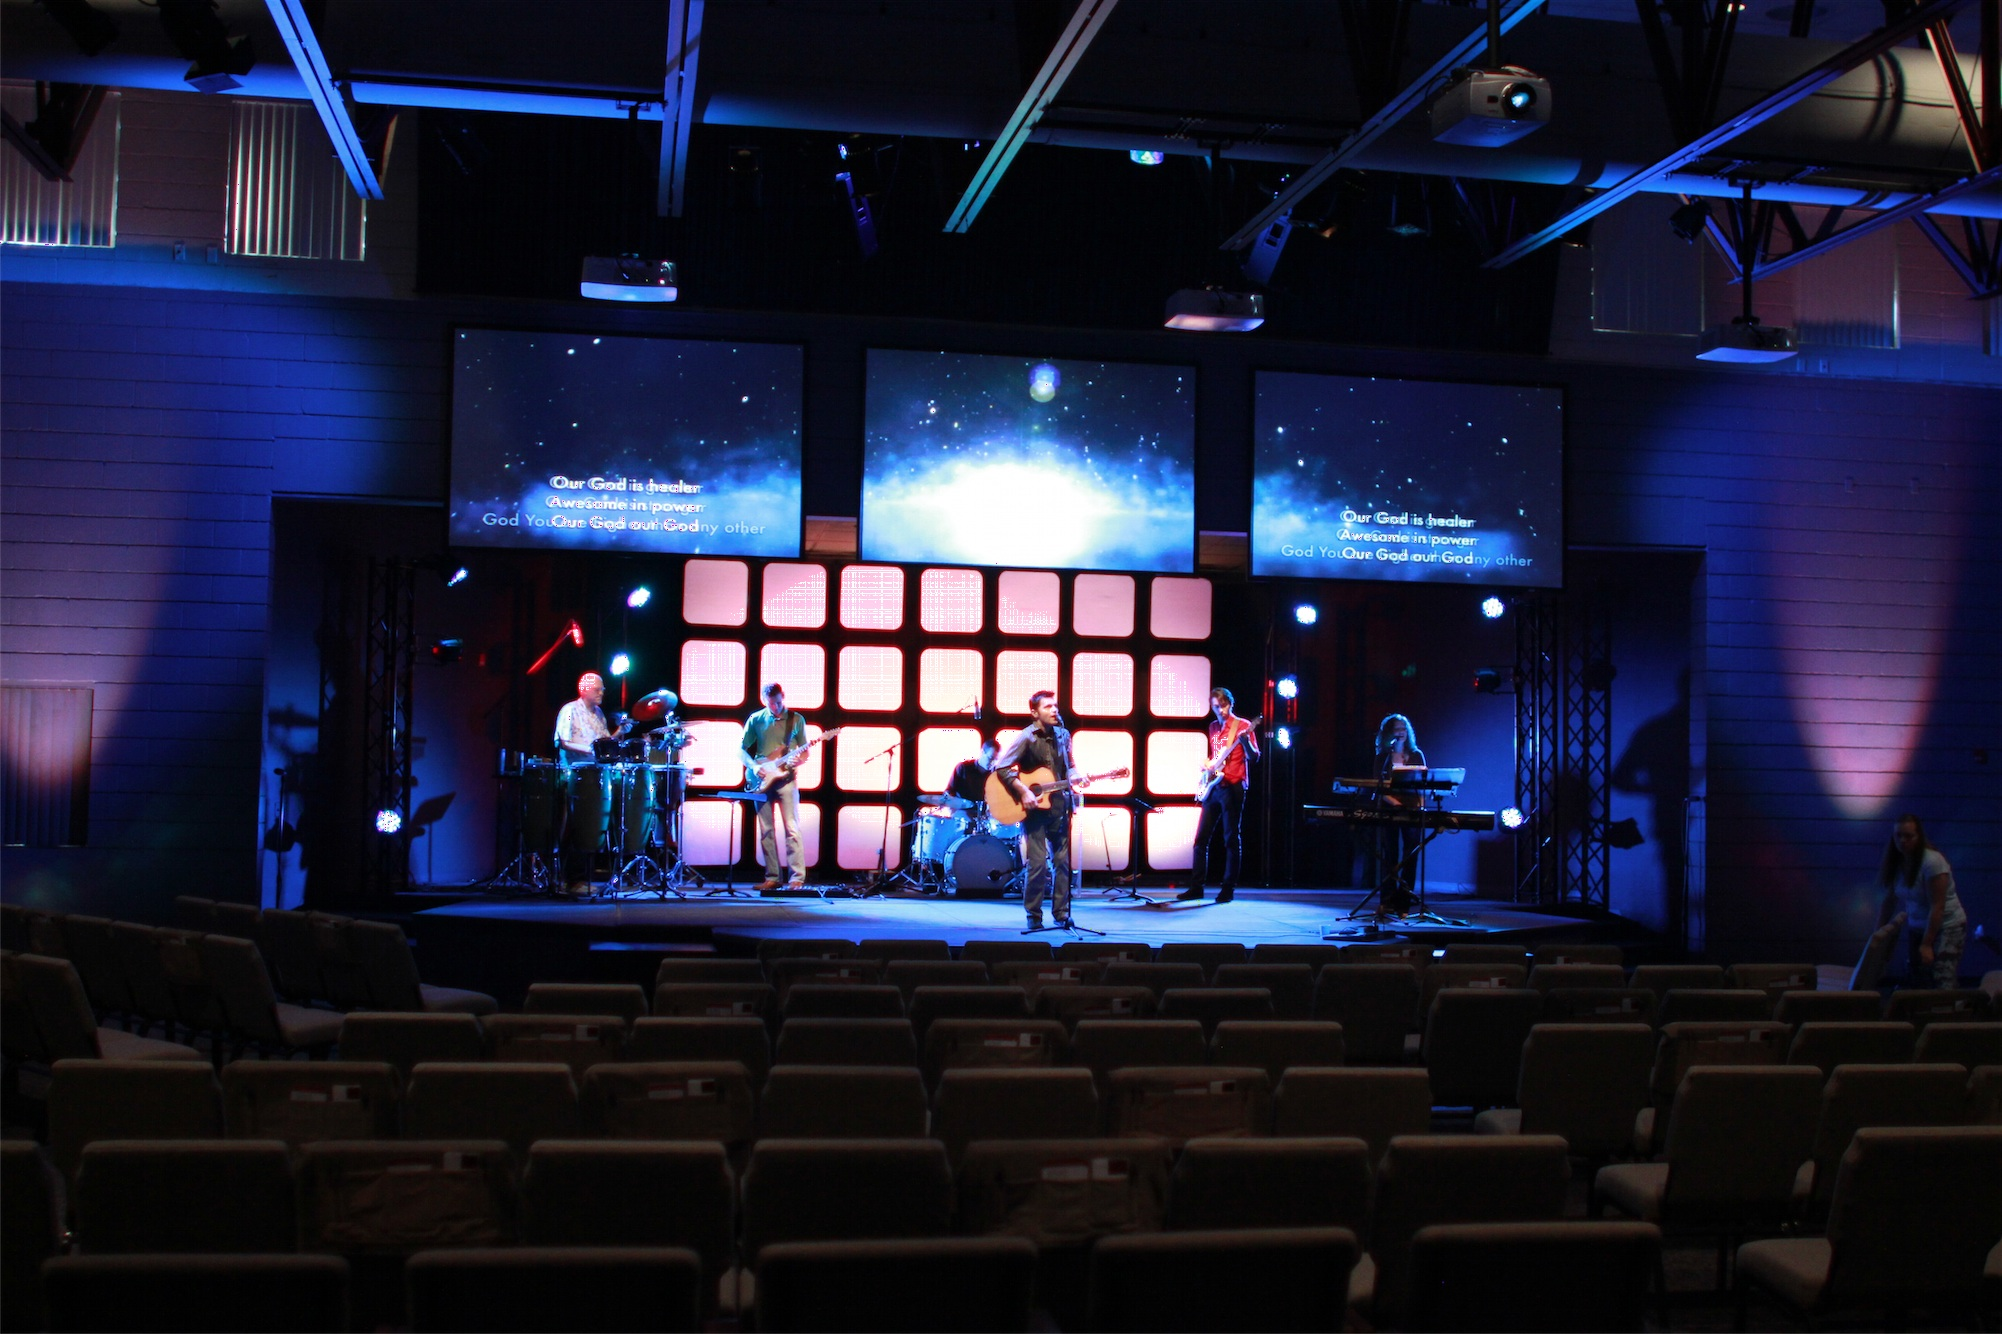 Frosty Forestry Church Stage Design Ideas Mesh Mash Church Stage ...